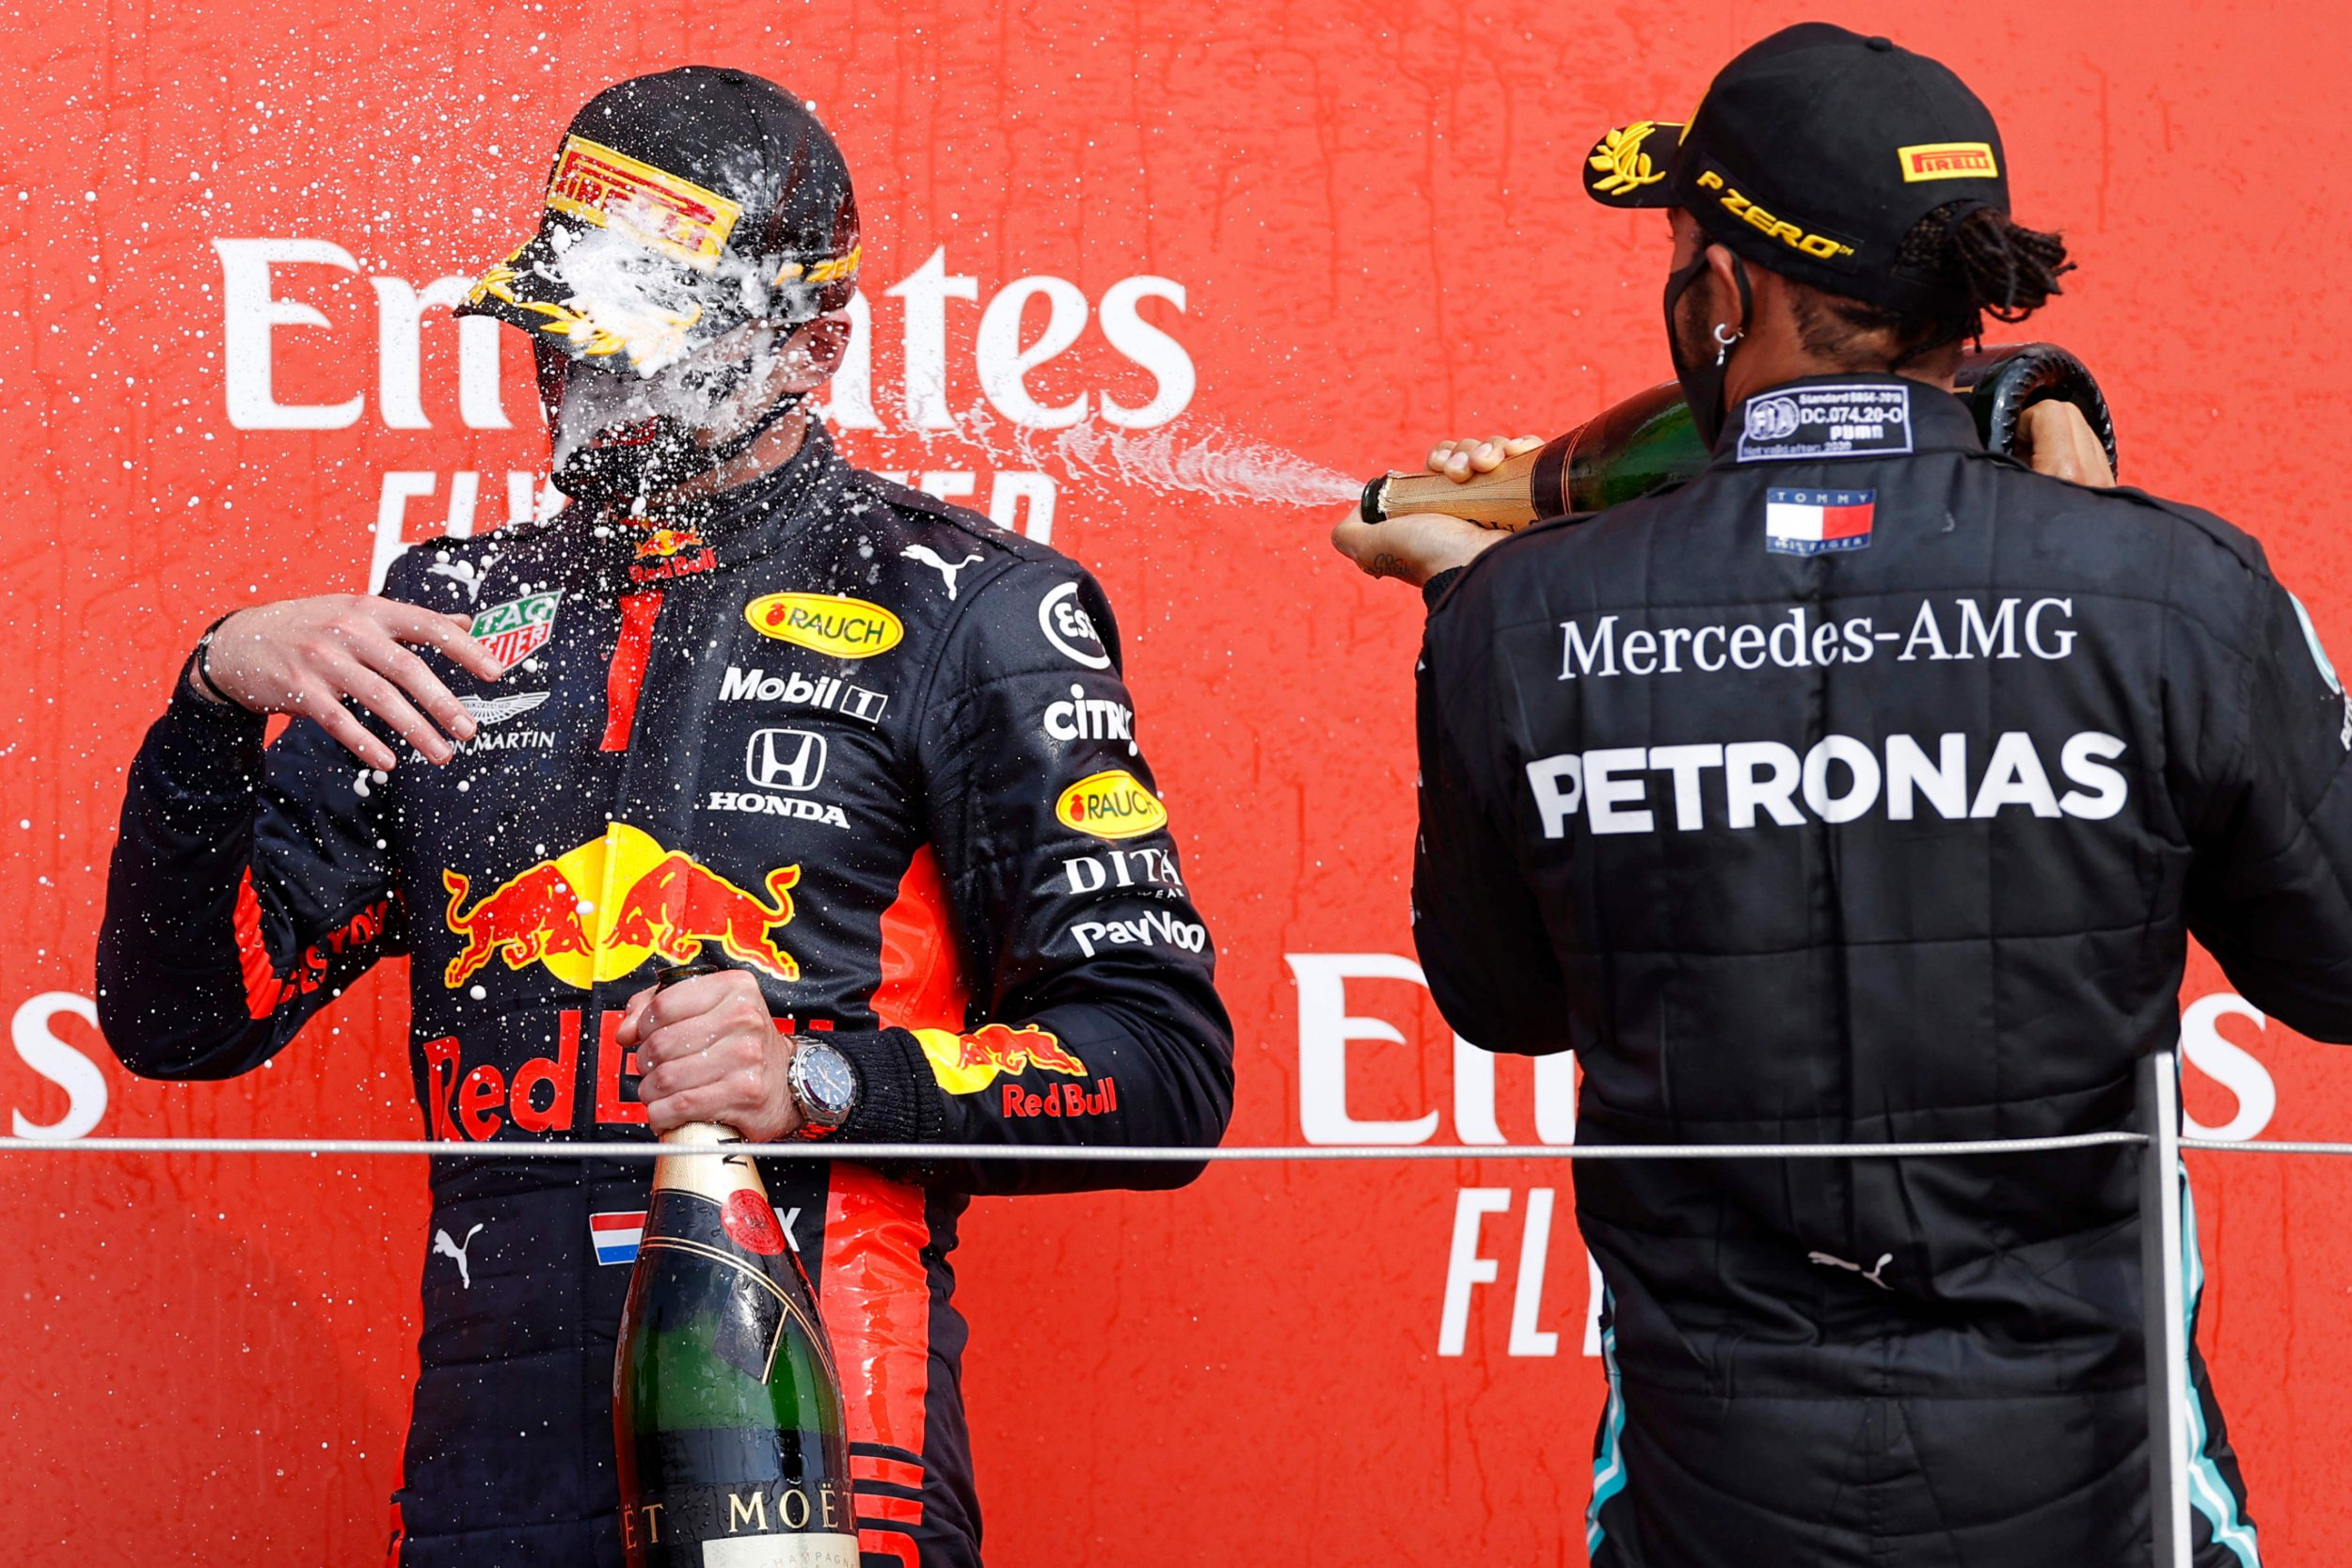 """""""I don't think we are the favourites"""" - Max Verstappen believes Mercedes still have edge over Red Bull"""